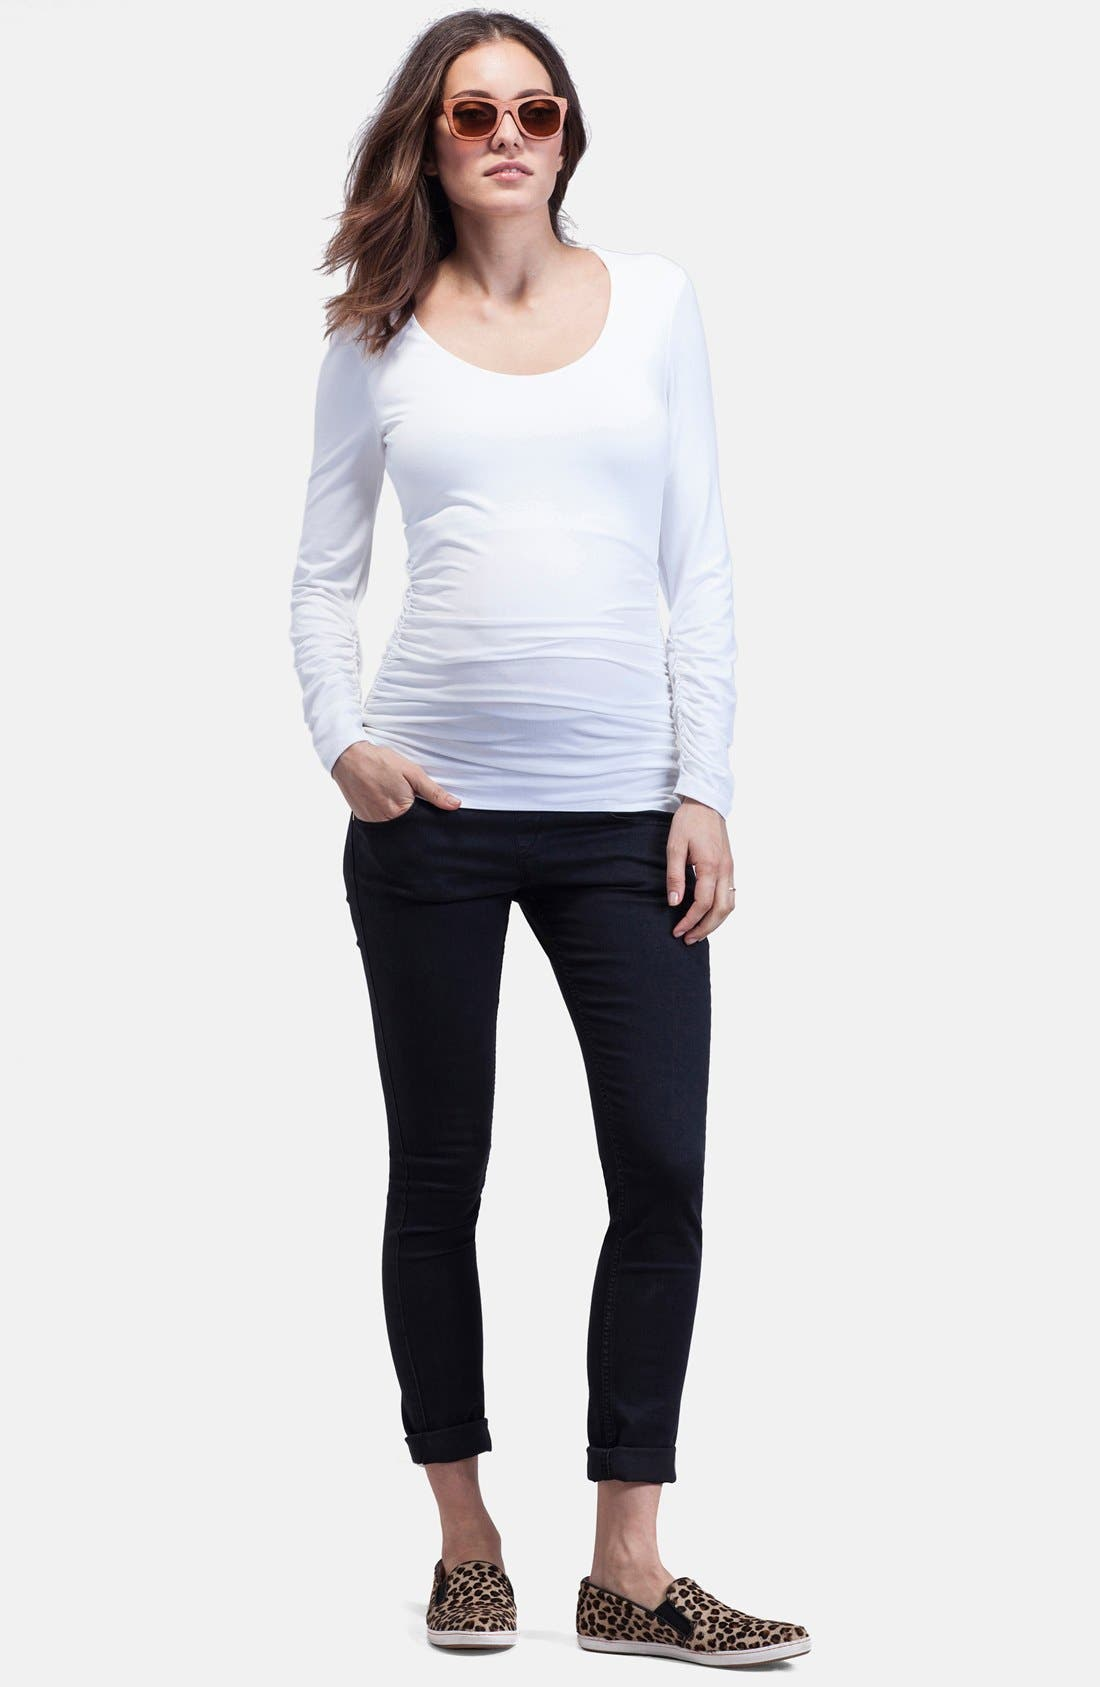 'The Scoop' Maternity Top,                             Alternate thumbnail 3, color,                             PURE WHITE